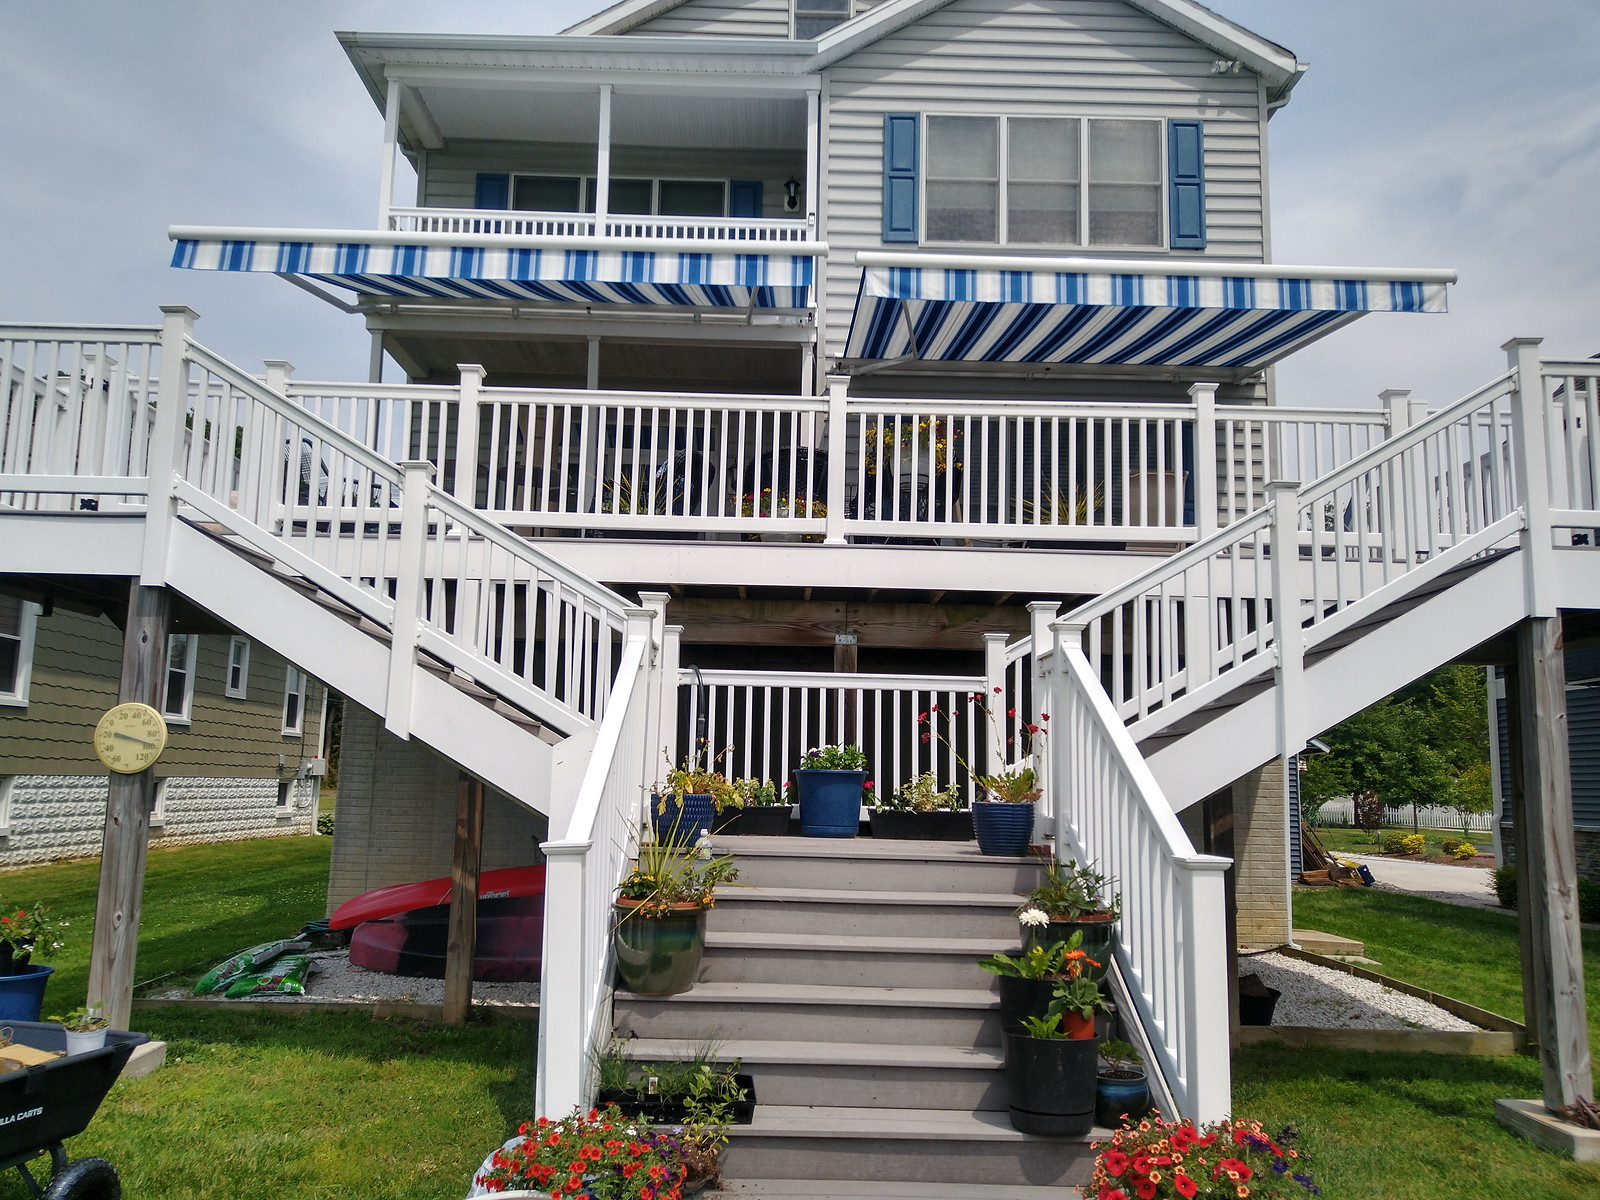 Dual Blue and White Striped Retractable Awnings